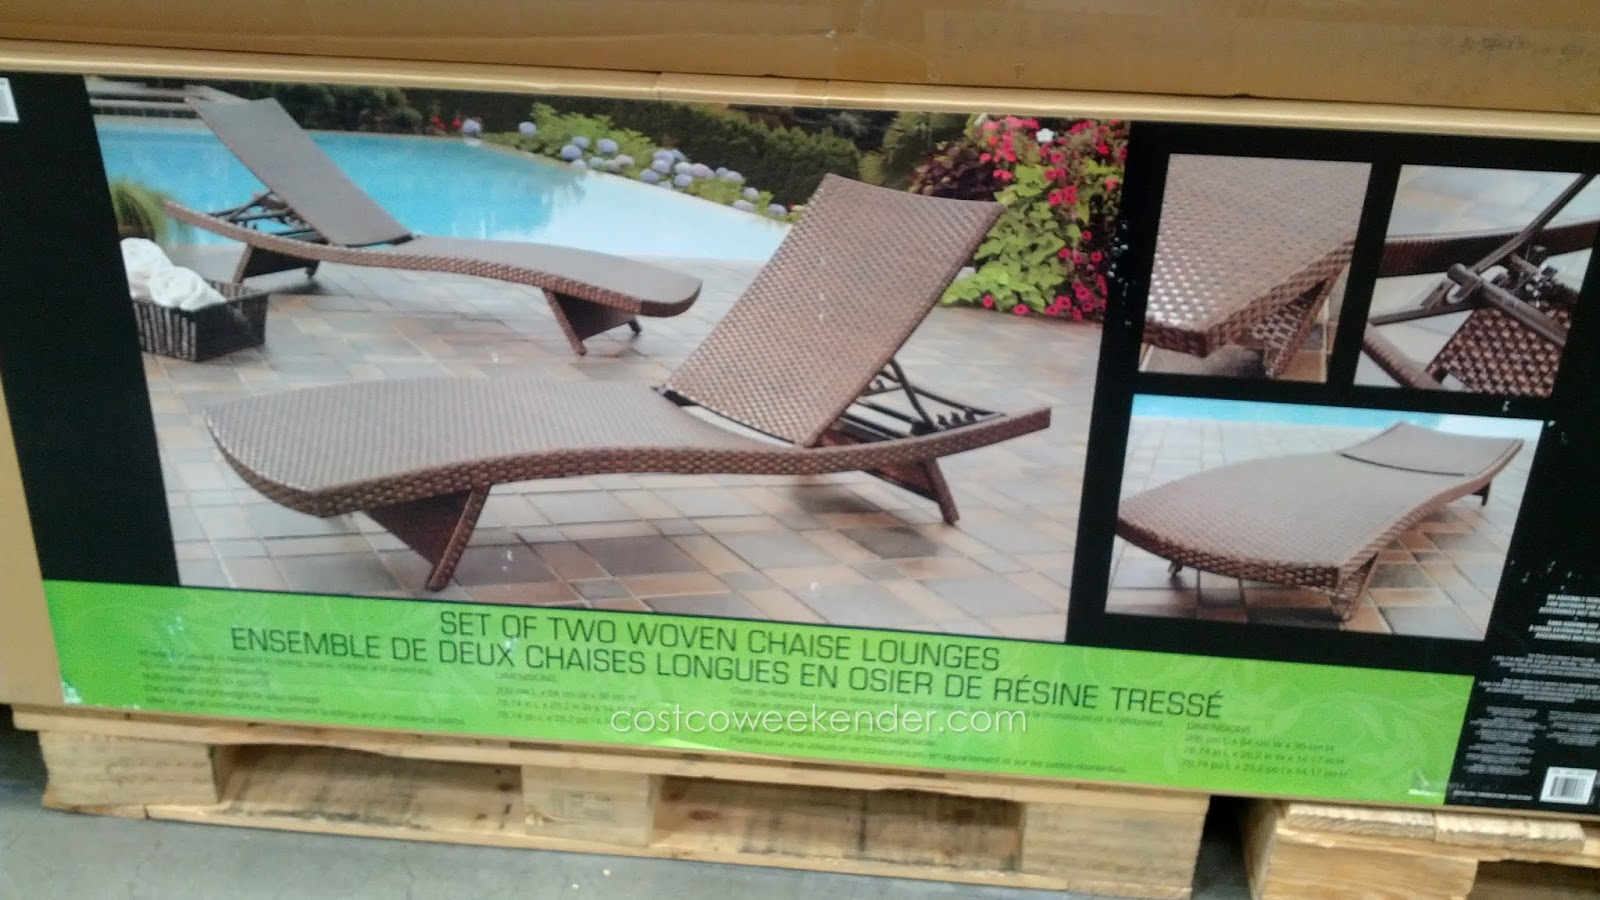 Costco Lounge Chairs Andersen Stokke Aloha Woven Chaise Lounge Chair Costco Weekender